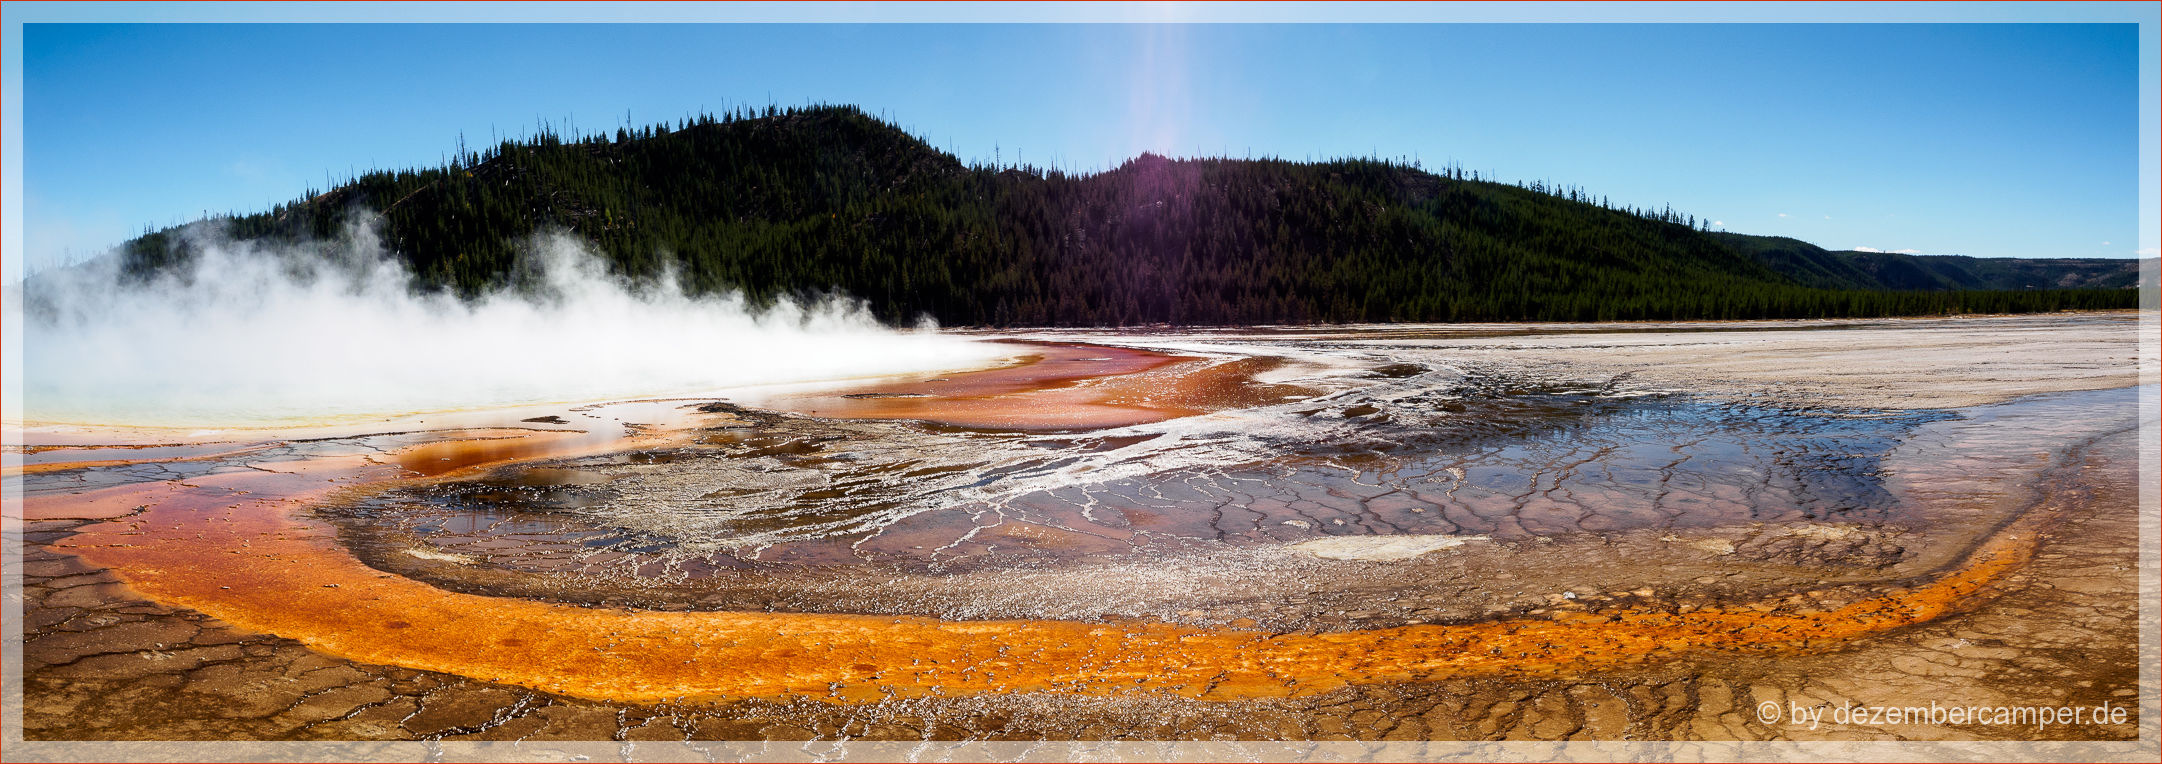 Yellowstone NP - Grand Prismatic Spring